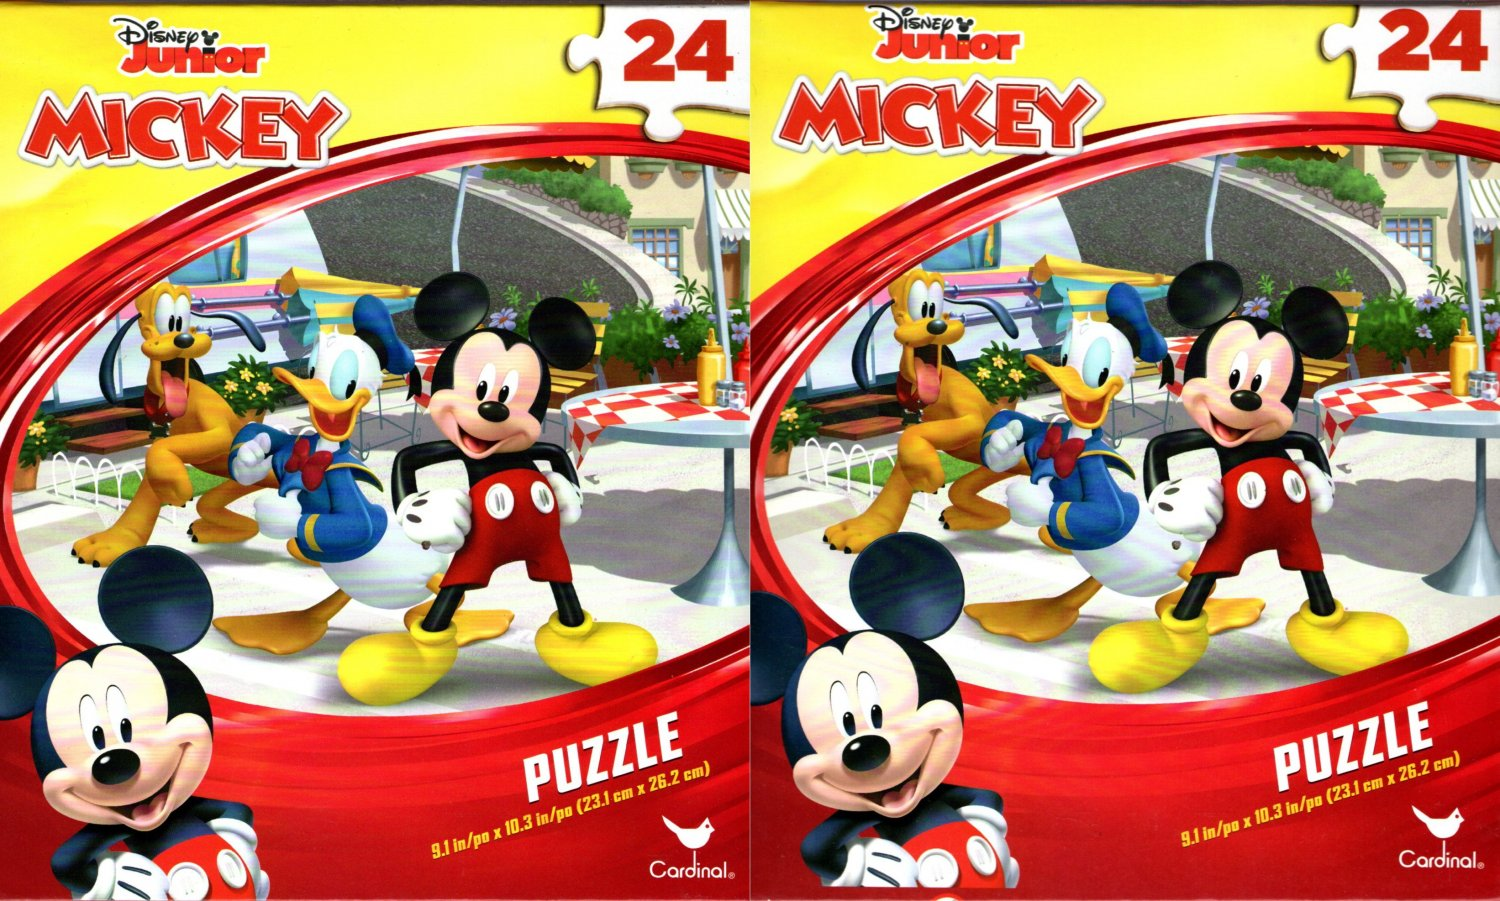 Disney Junior Mickey - 24 Piece Jigsaw Puzzle - (Set of 2)